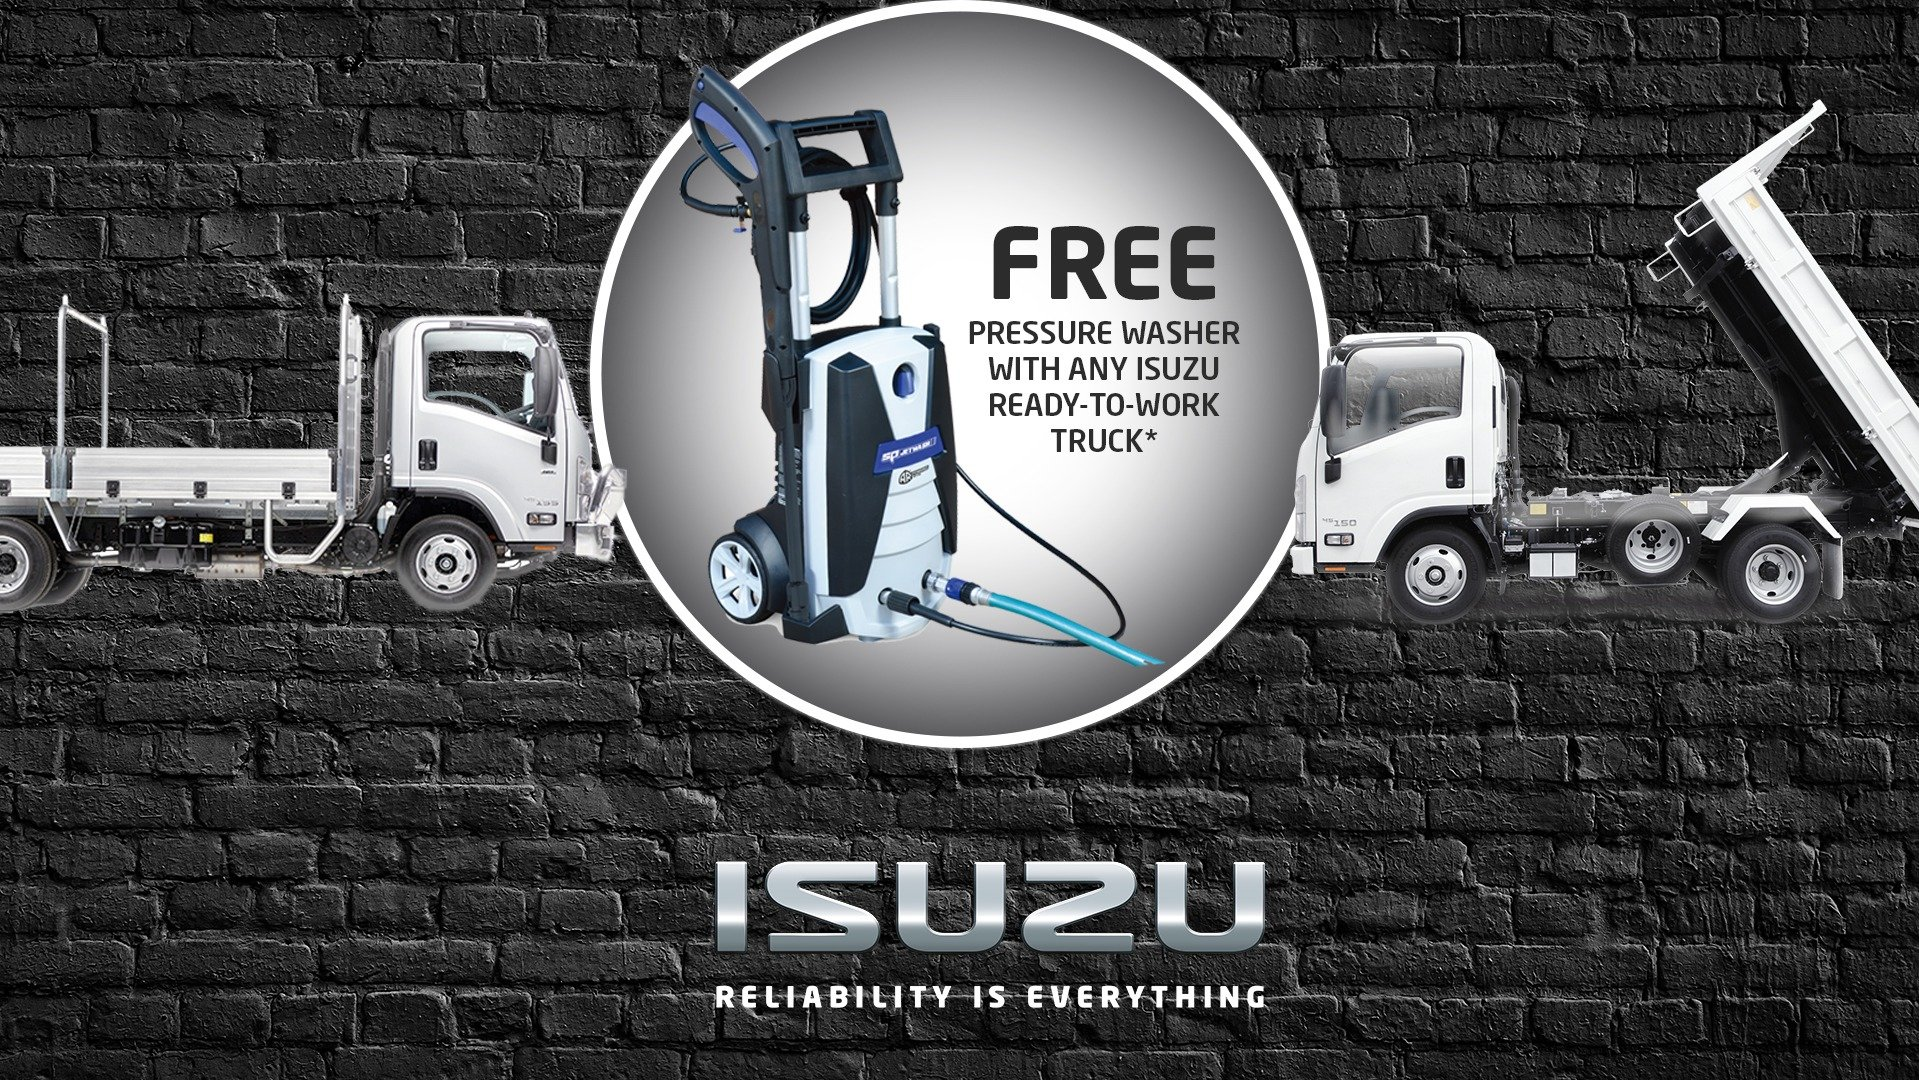 Free Pressure Washer Promotion